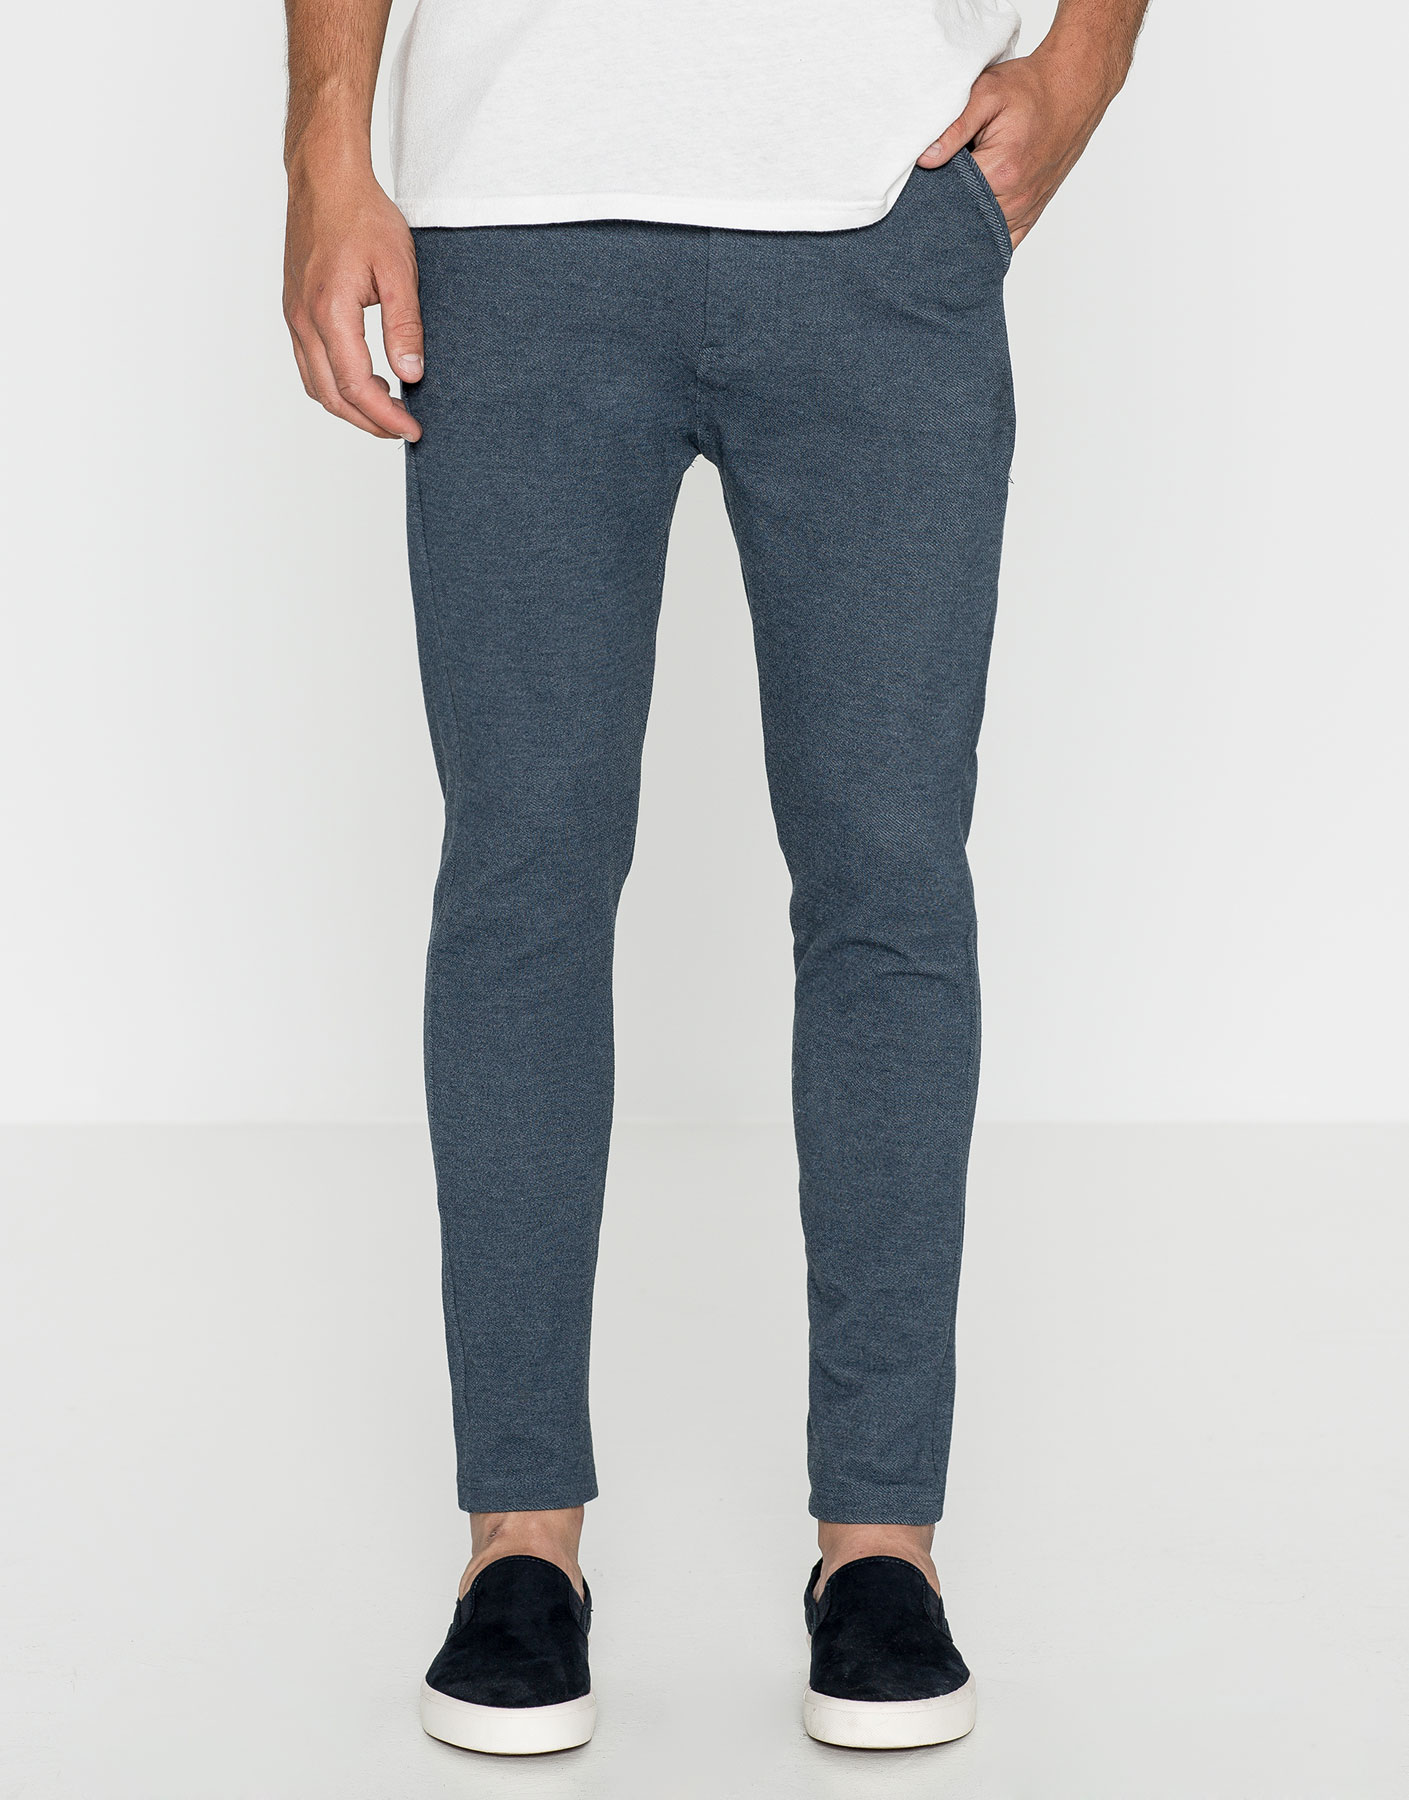 Pantalon jogging type chino